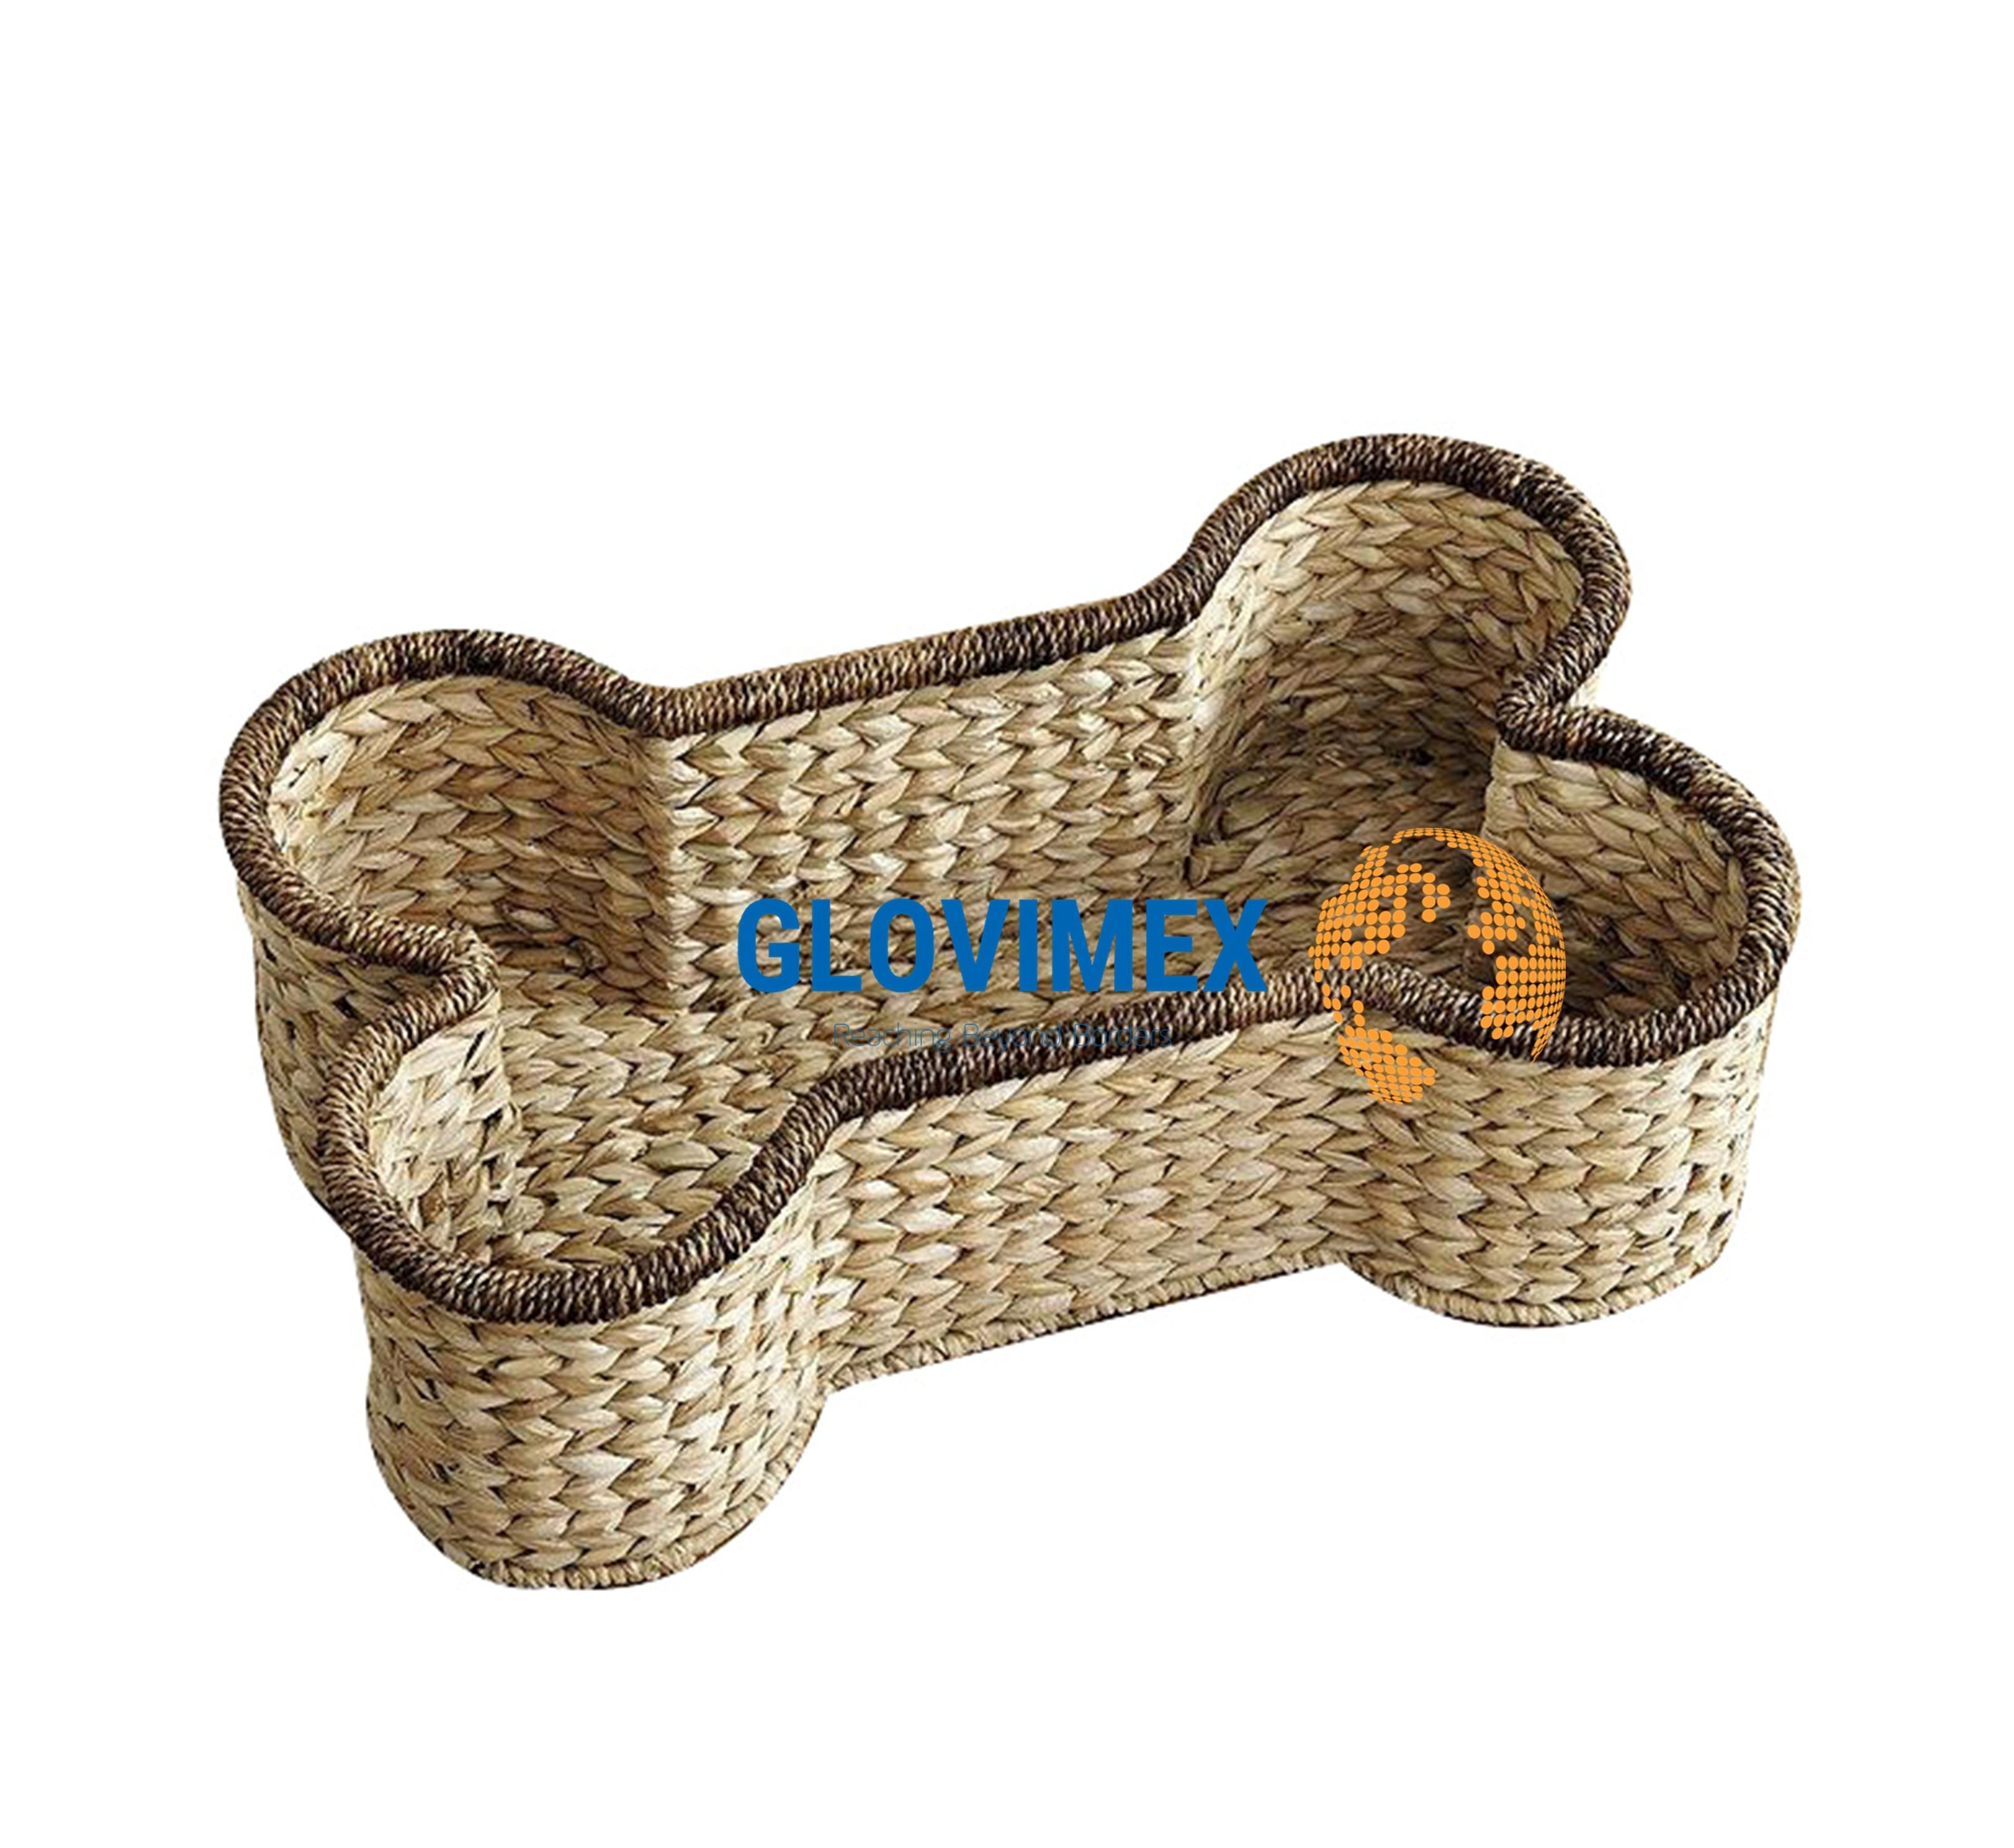 Wholesale Handmade Cute Dog Bone Water Hyacinth Basket Laundry Or Toy Storage Made By Vietnamese Artisans